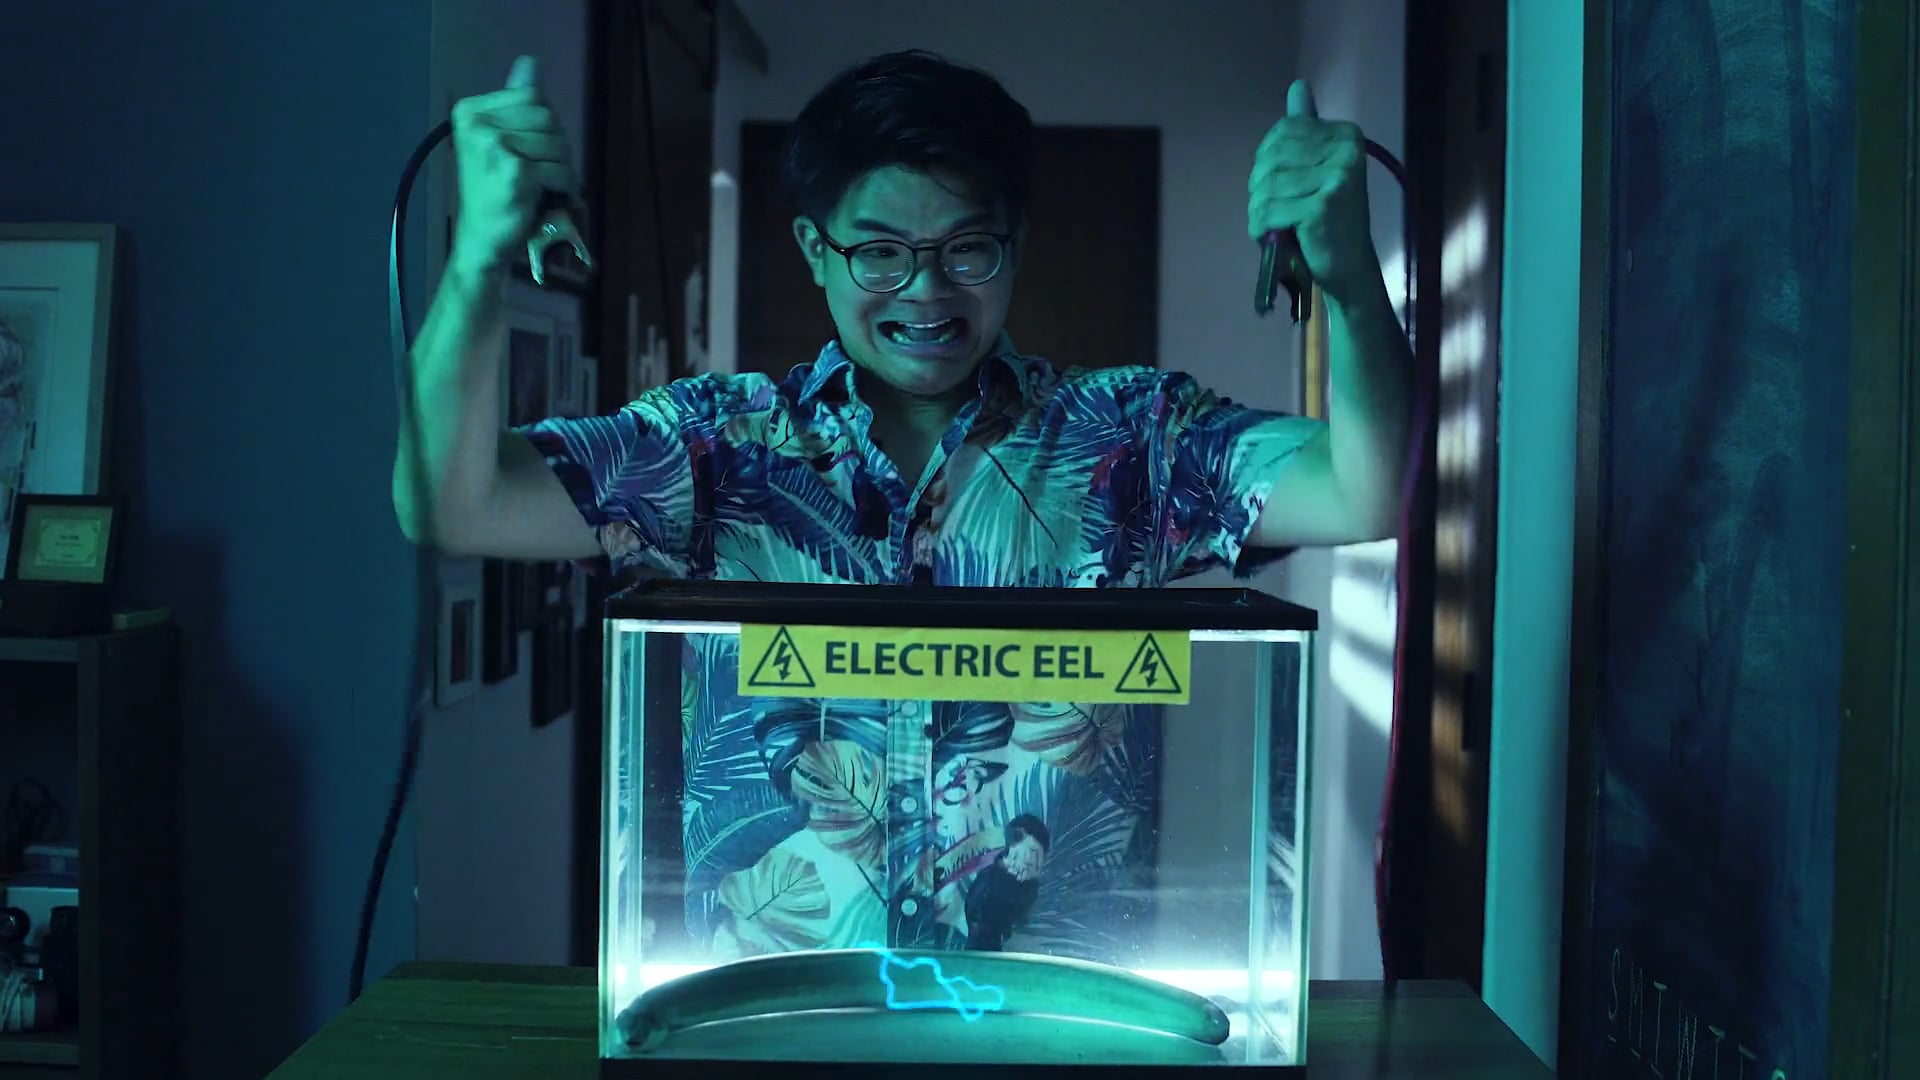 CCP KeppelElectric 5ExtremeWaysToSaveElectricity 2019